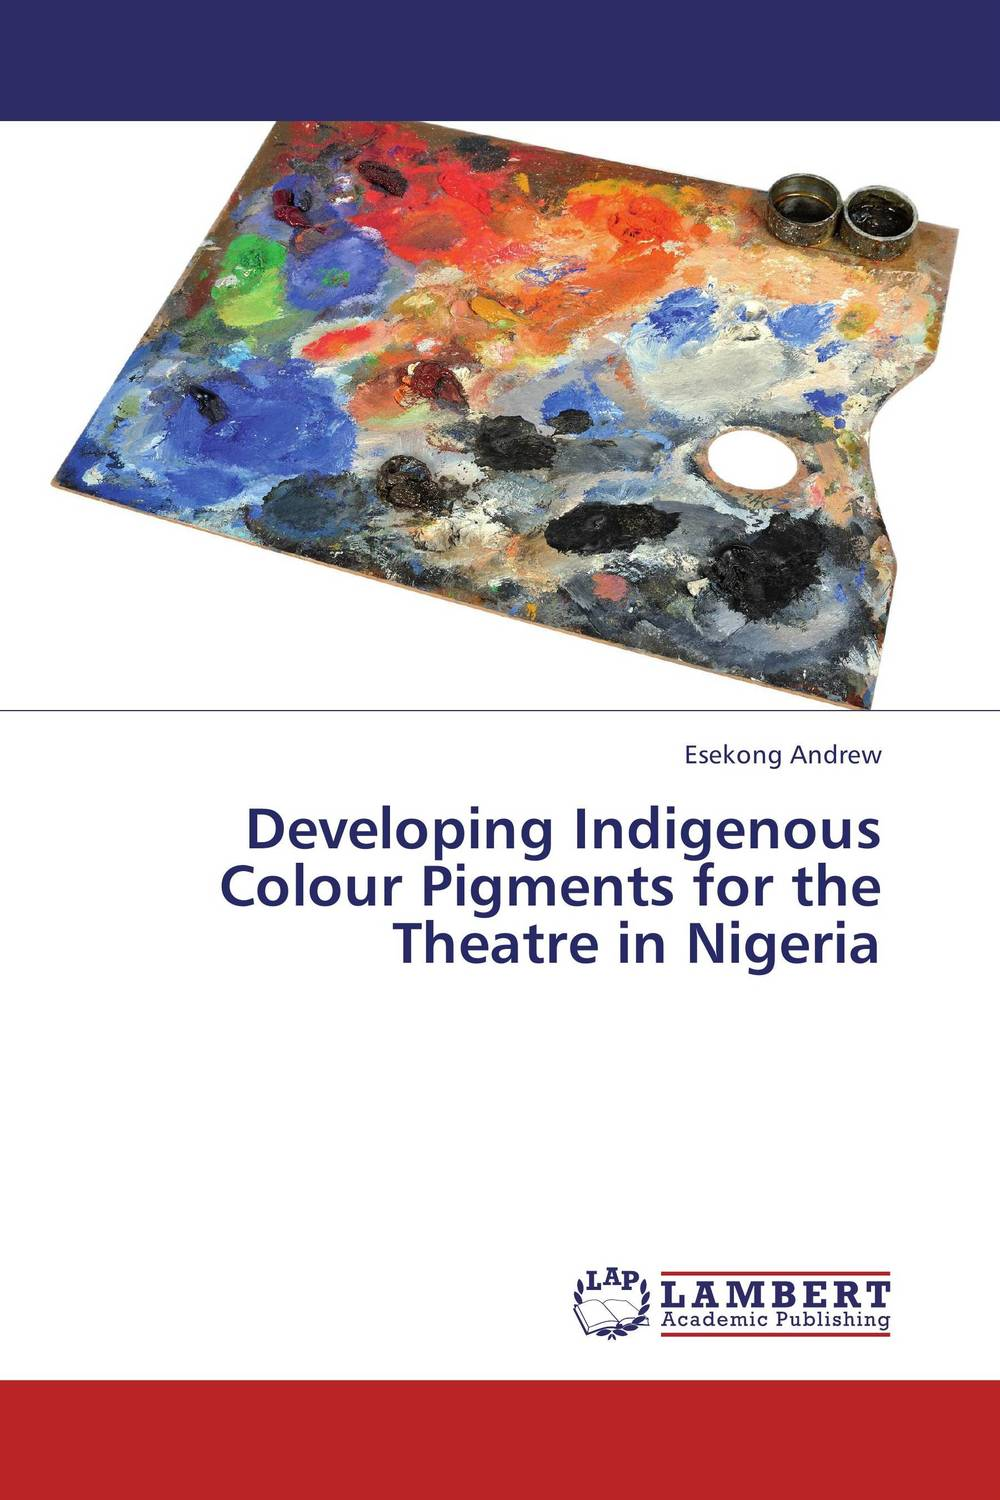 Developing Indigenous Colour Pigments for the Theatre in Nigeria bridging theatre and visual art